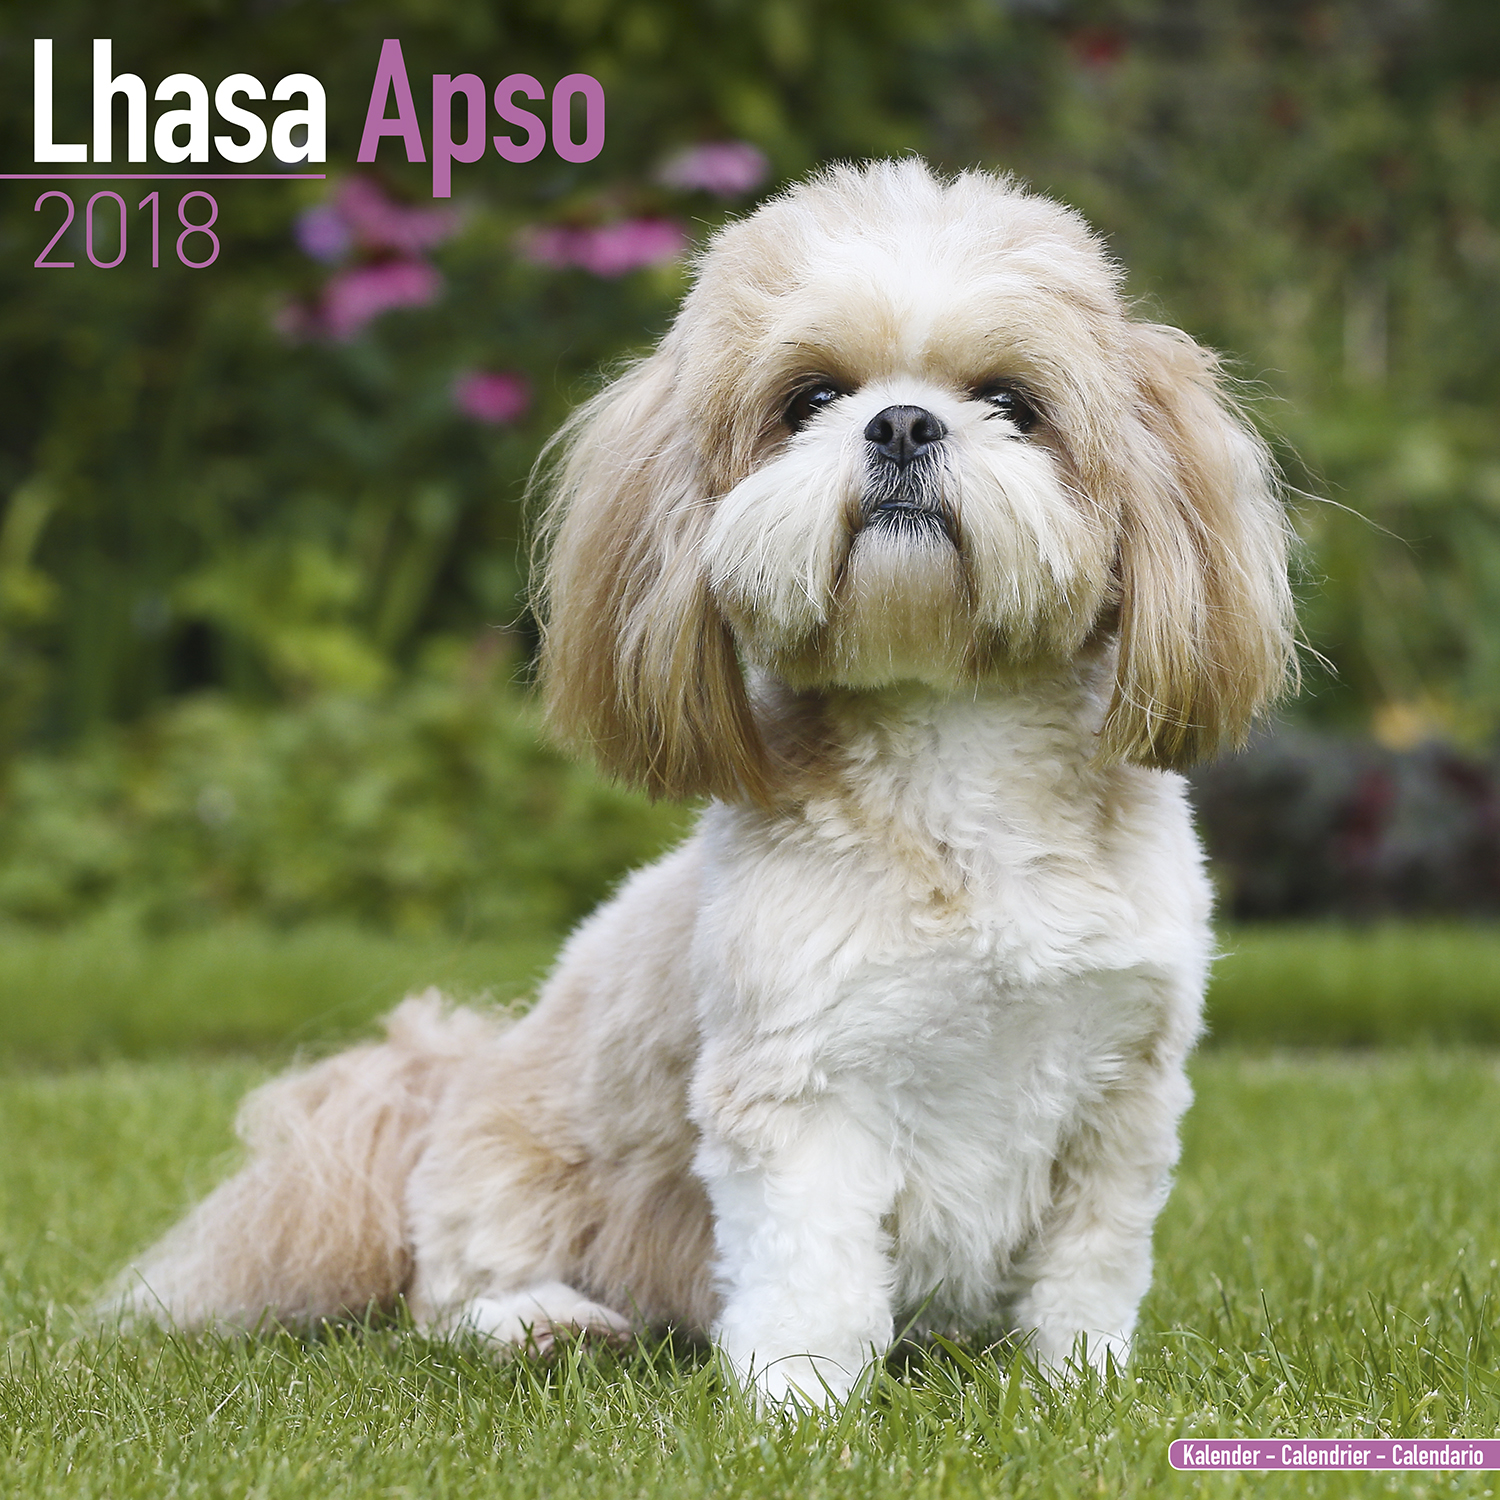 Dog Wall Art Lhasa Apso Calendar 2018 Pet Prints Inc